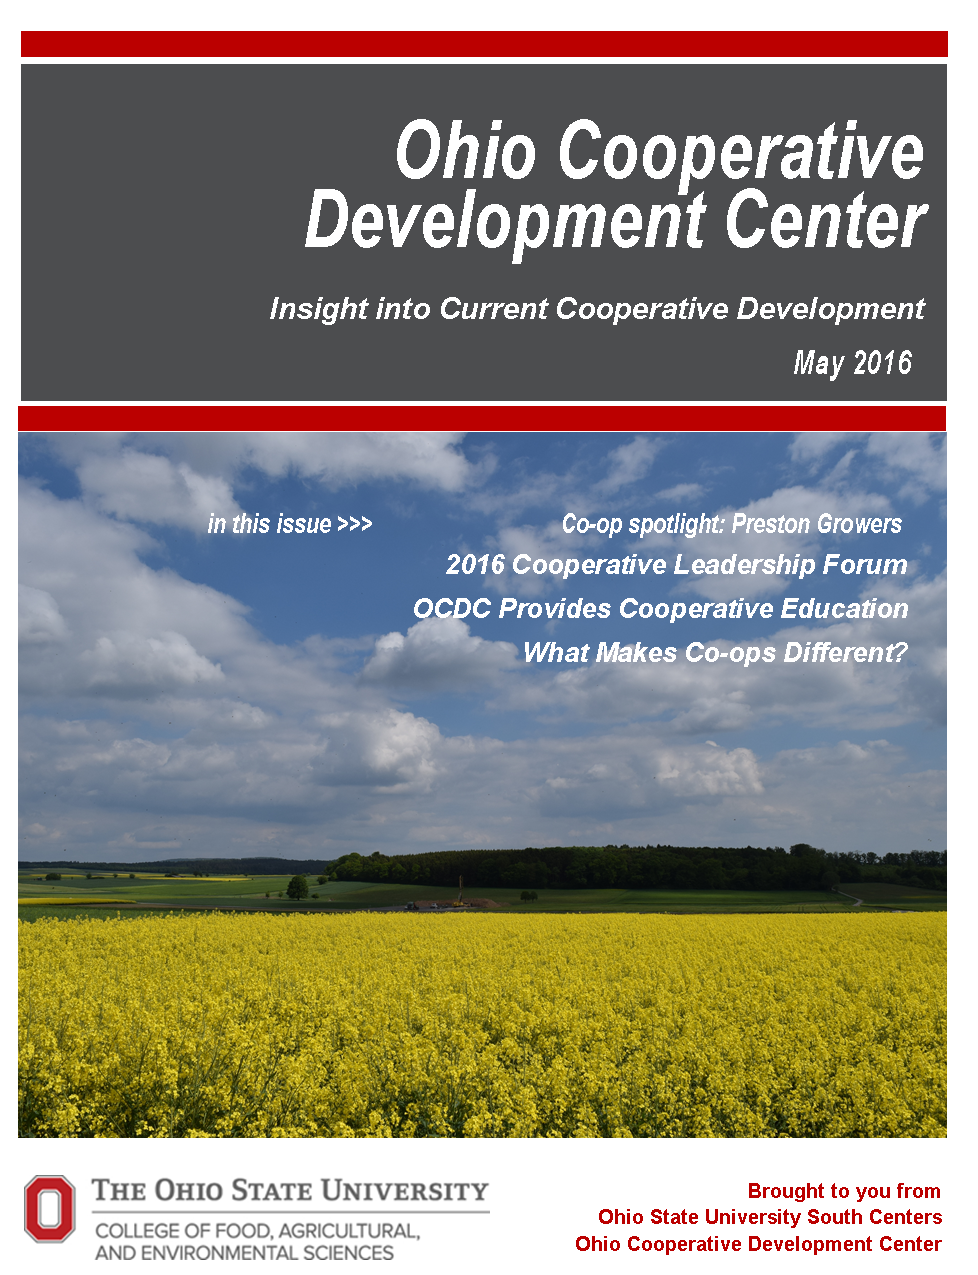 May 2016 OCDC Newsletter cover pic